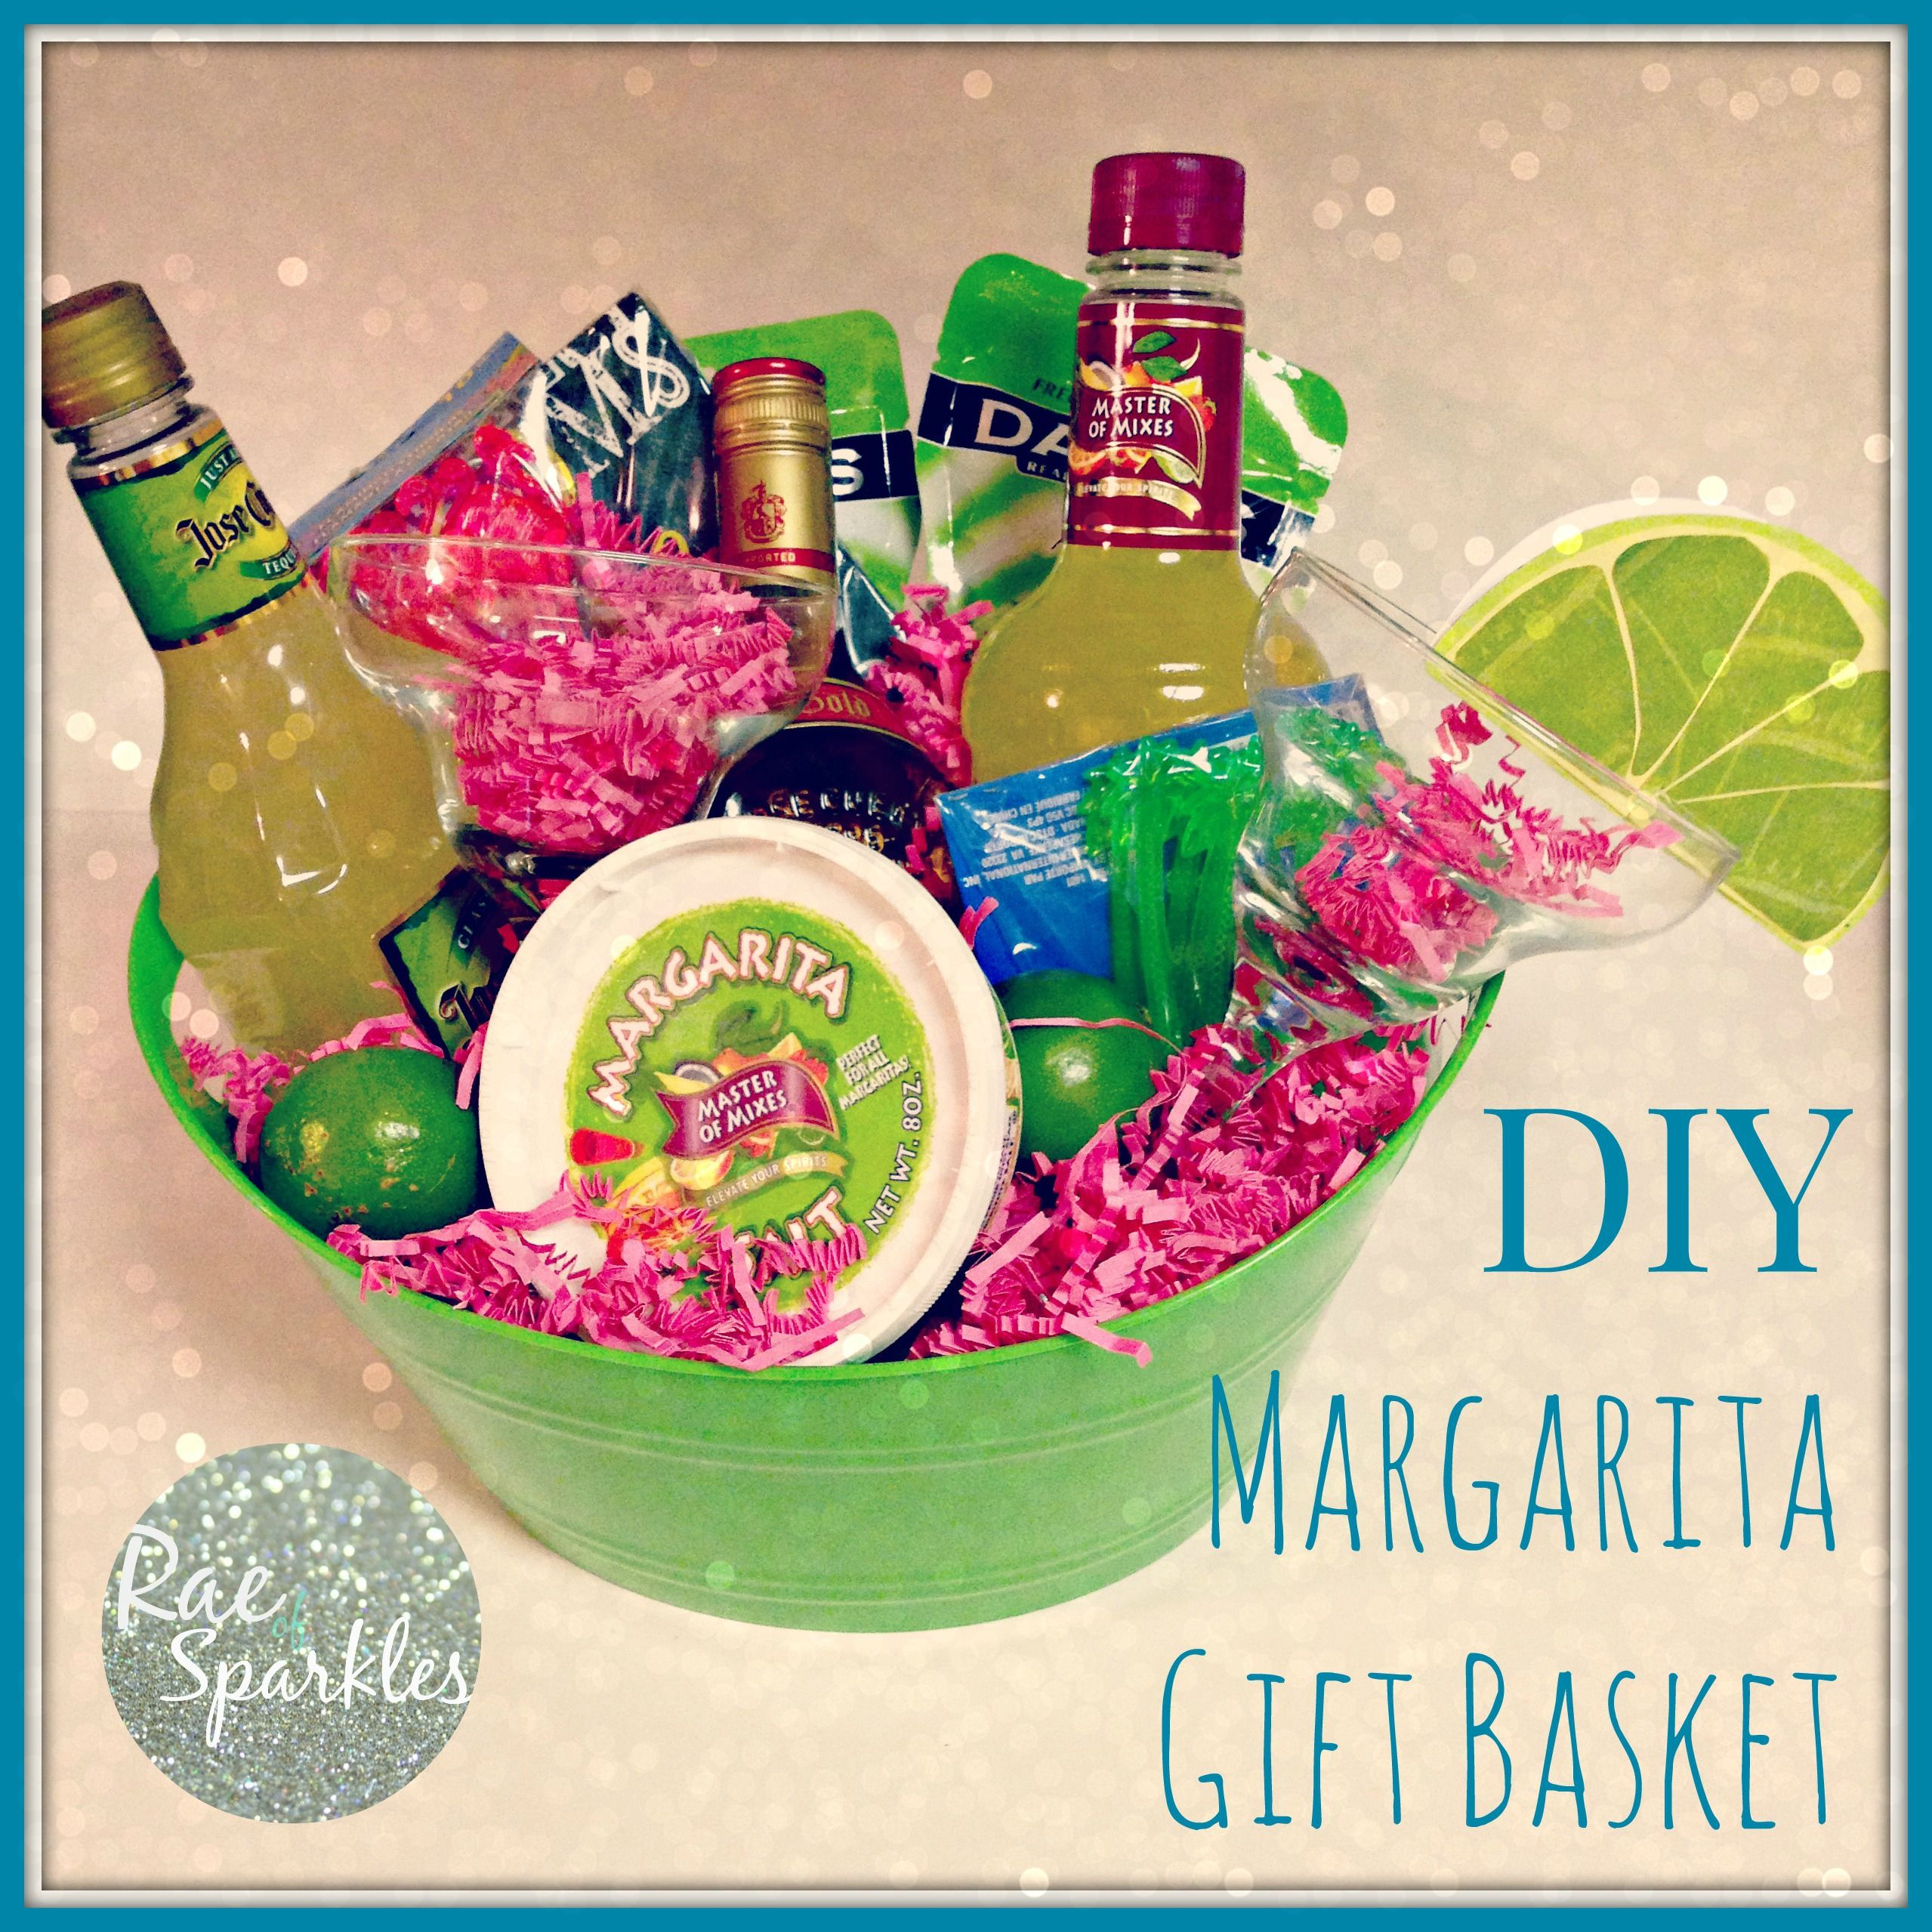 Diy margarita gift basket perfect gift for a friend who has diy margarita gift basket perfect gift for a friend who has everything solutioingenieria Image collections